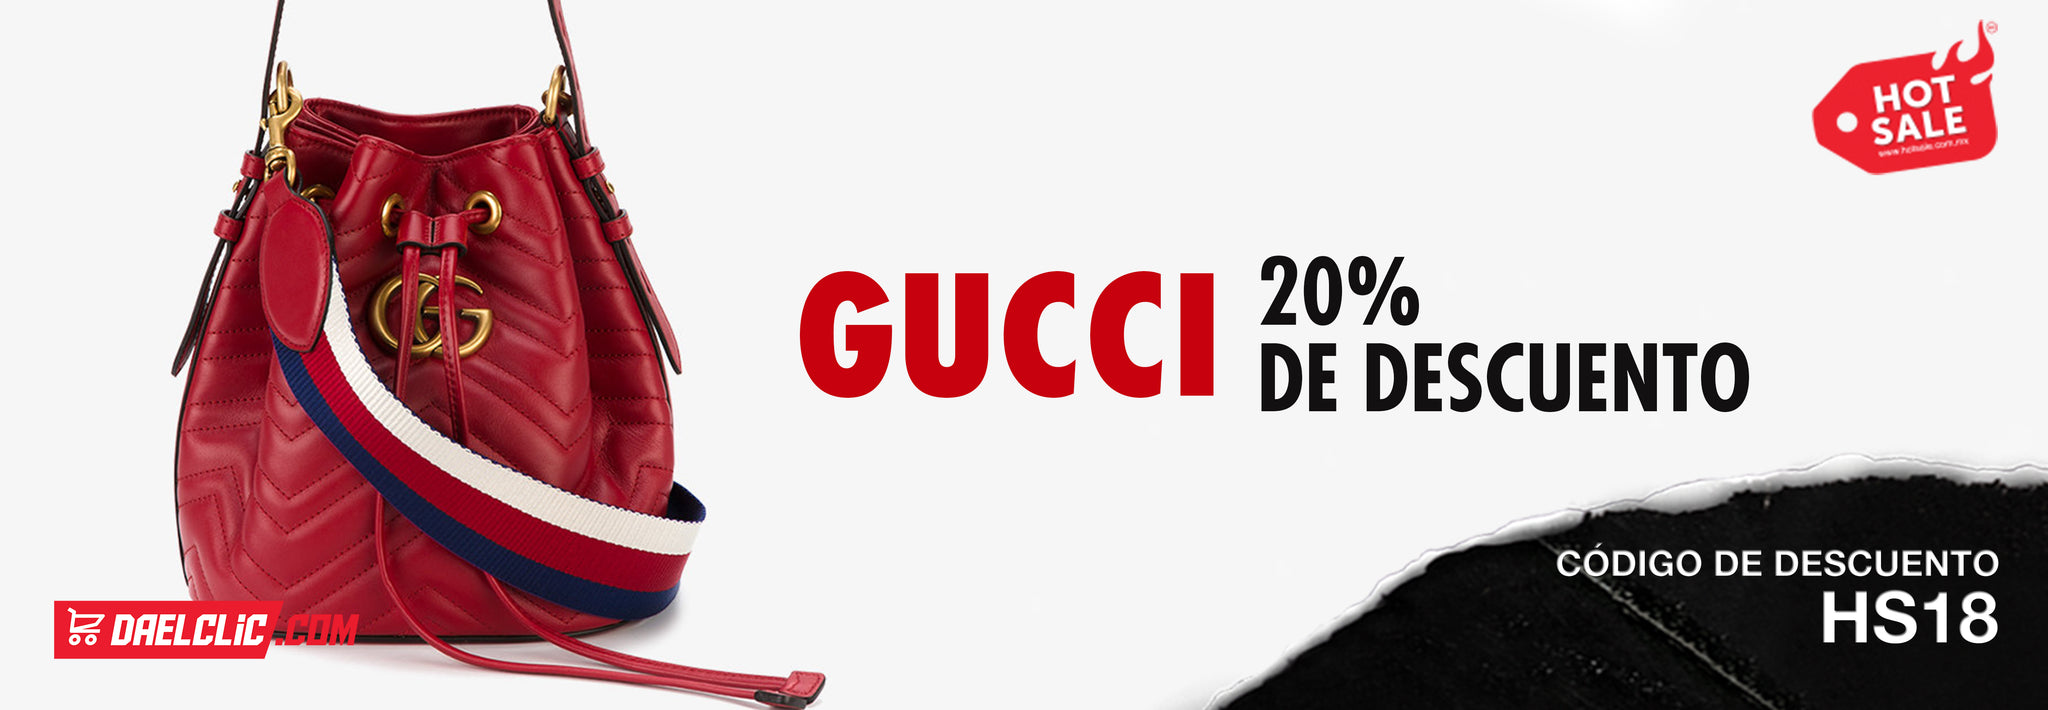 Gucci HOT SALE